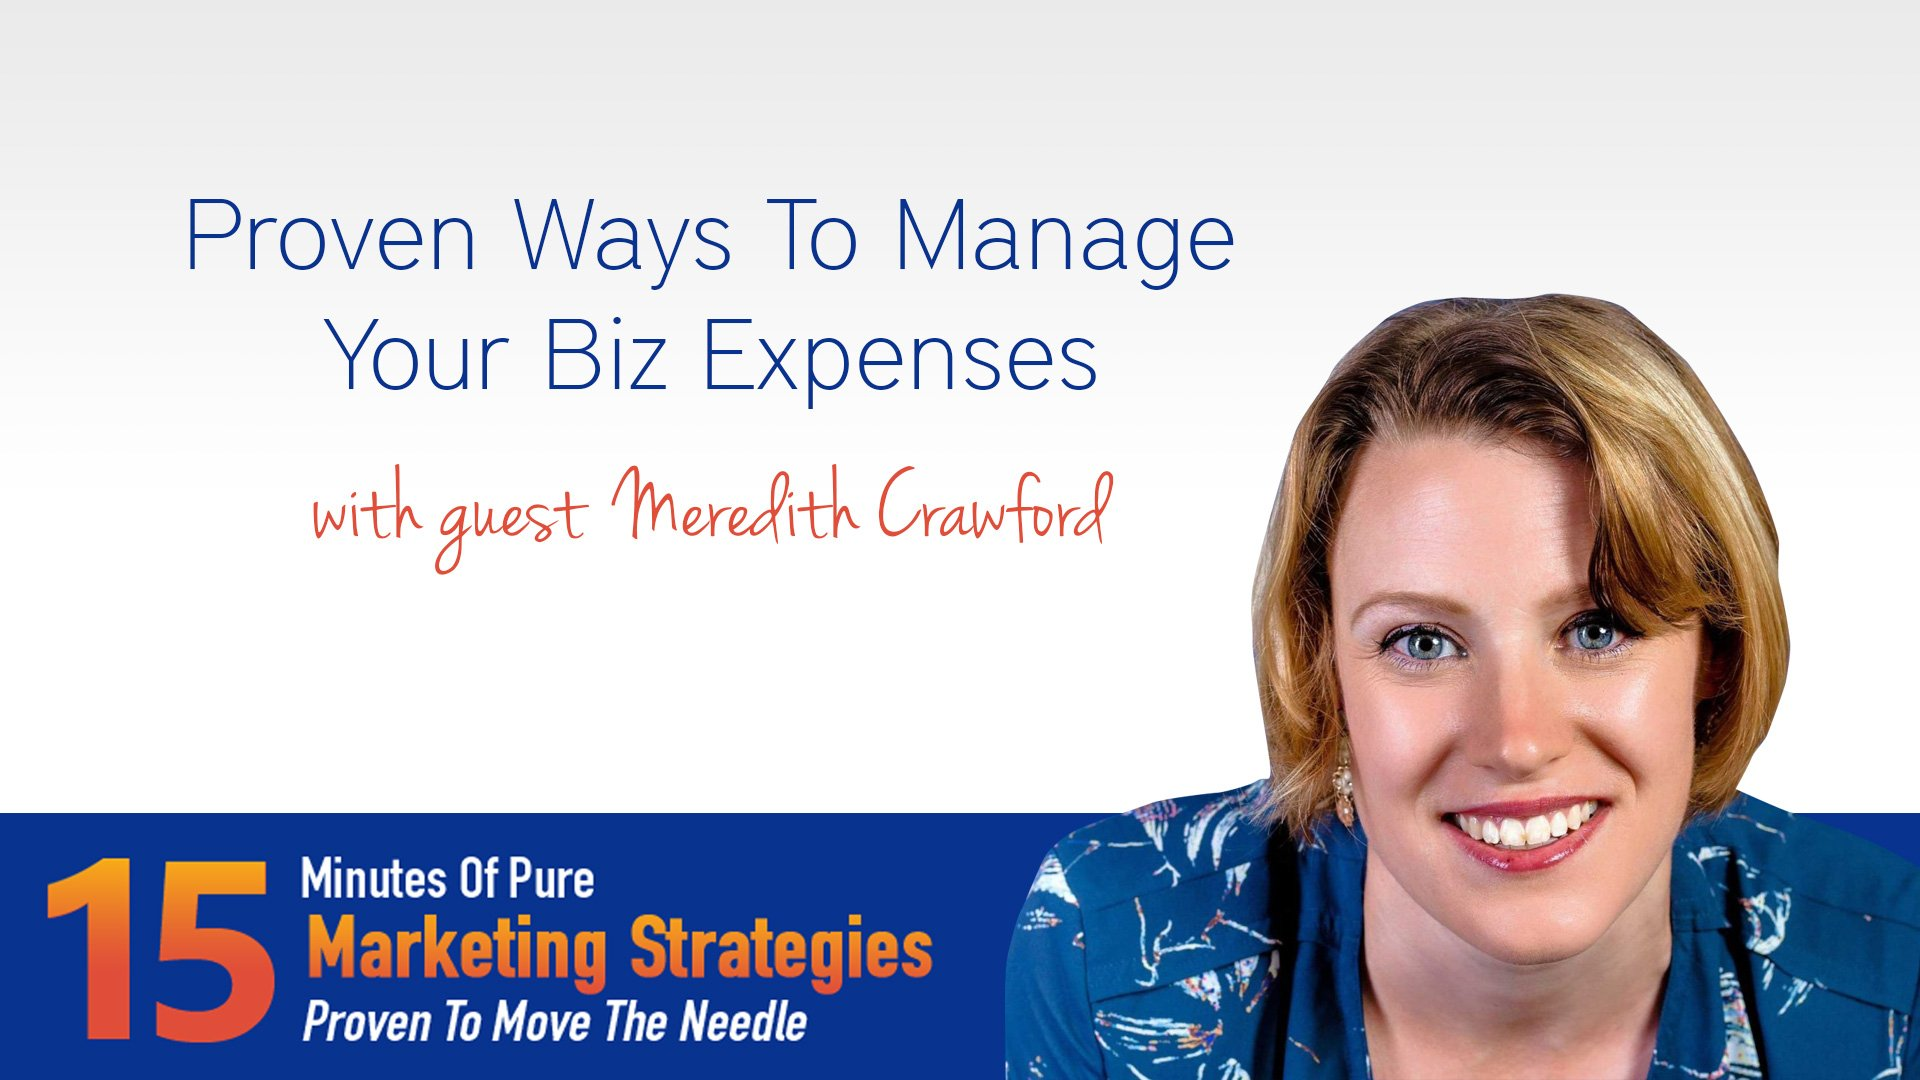 Manage Your Biz Expenses